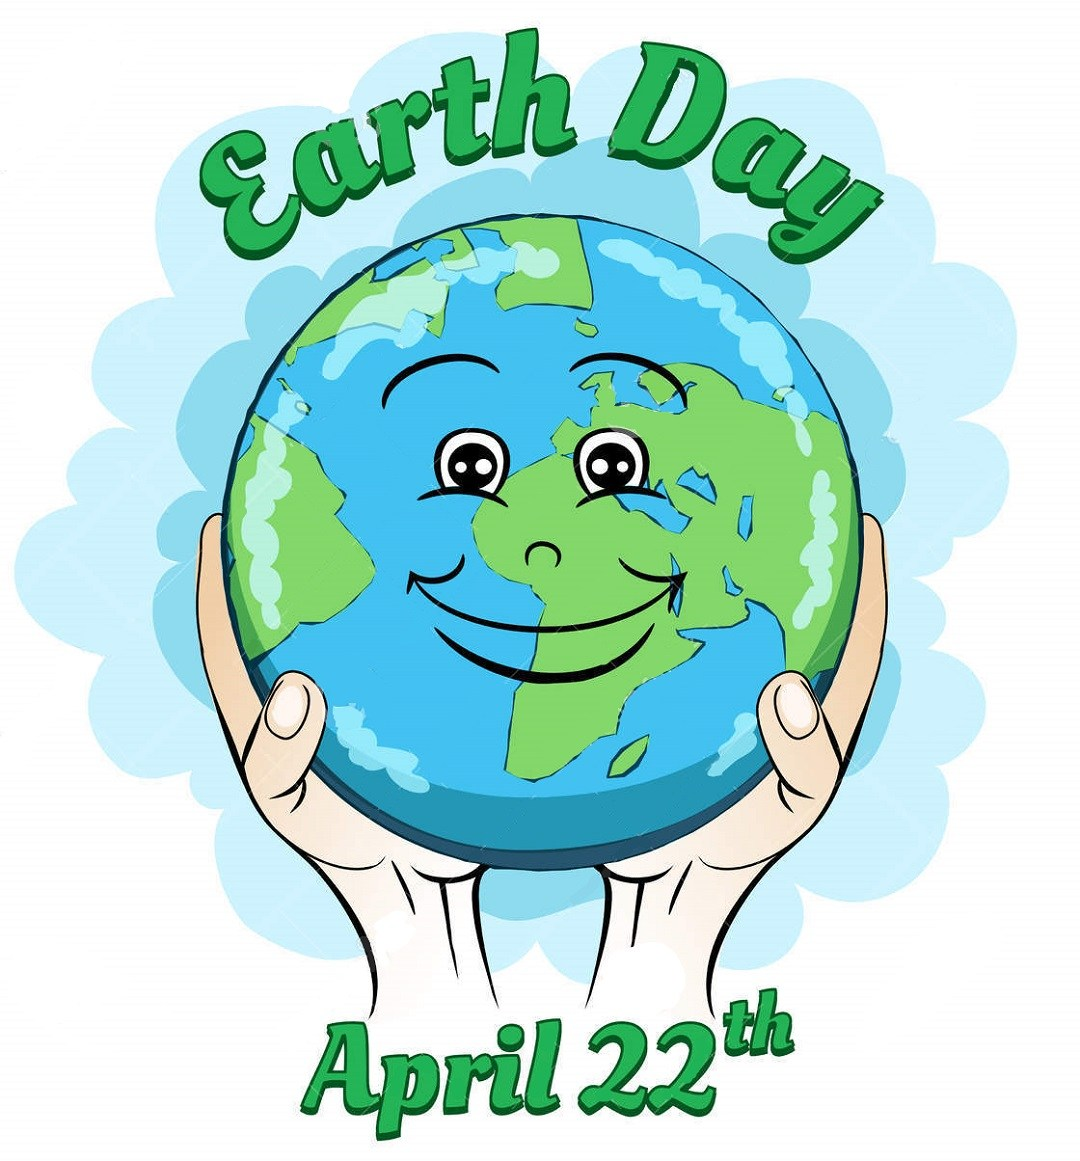 Earth Day Drawing Images at GetDrawings.com | Free for personal use ...